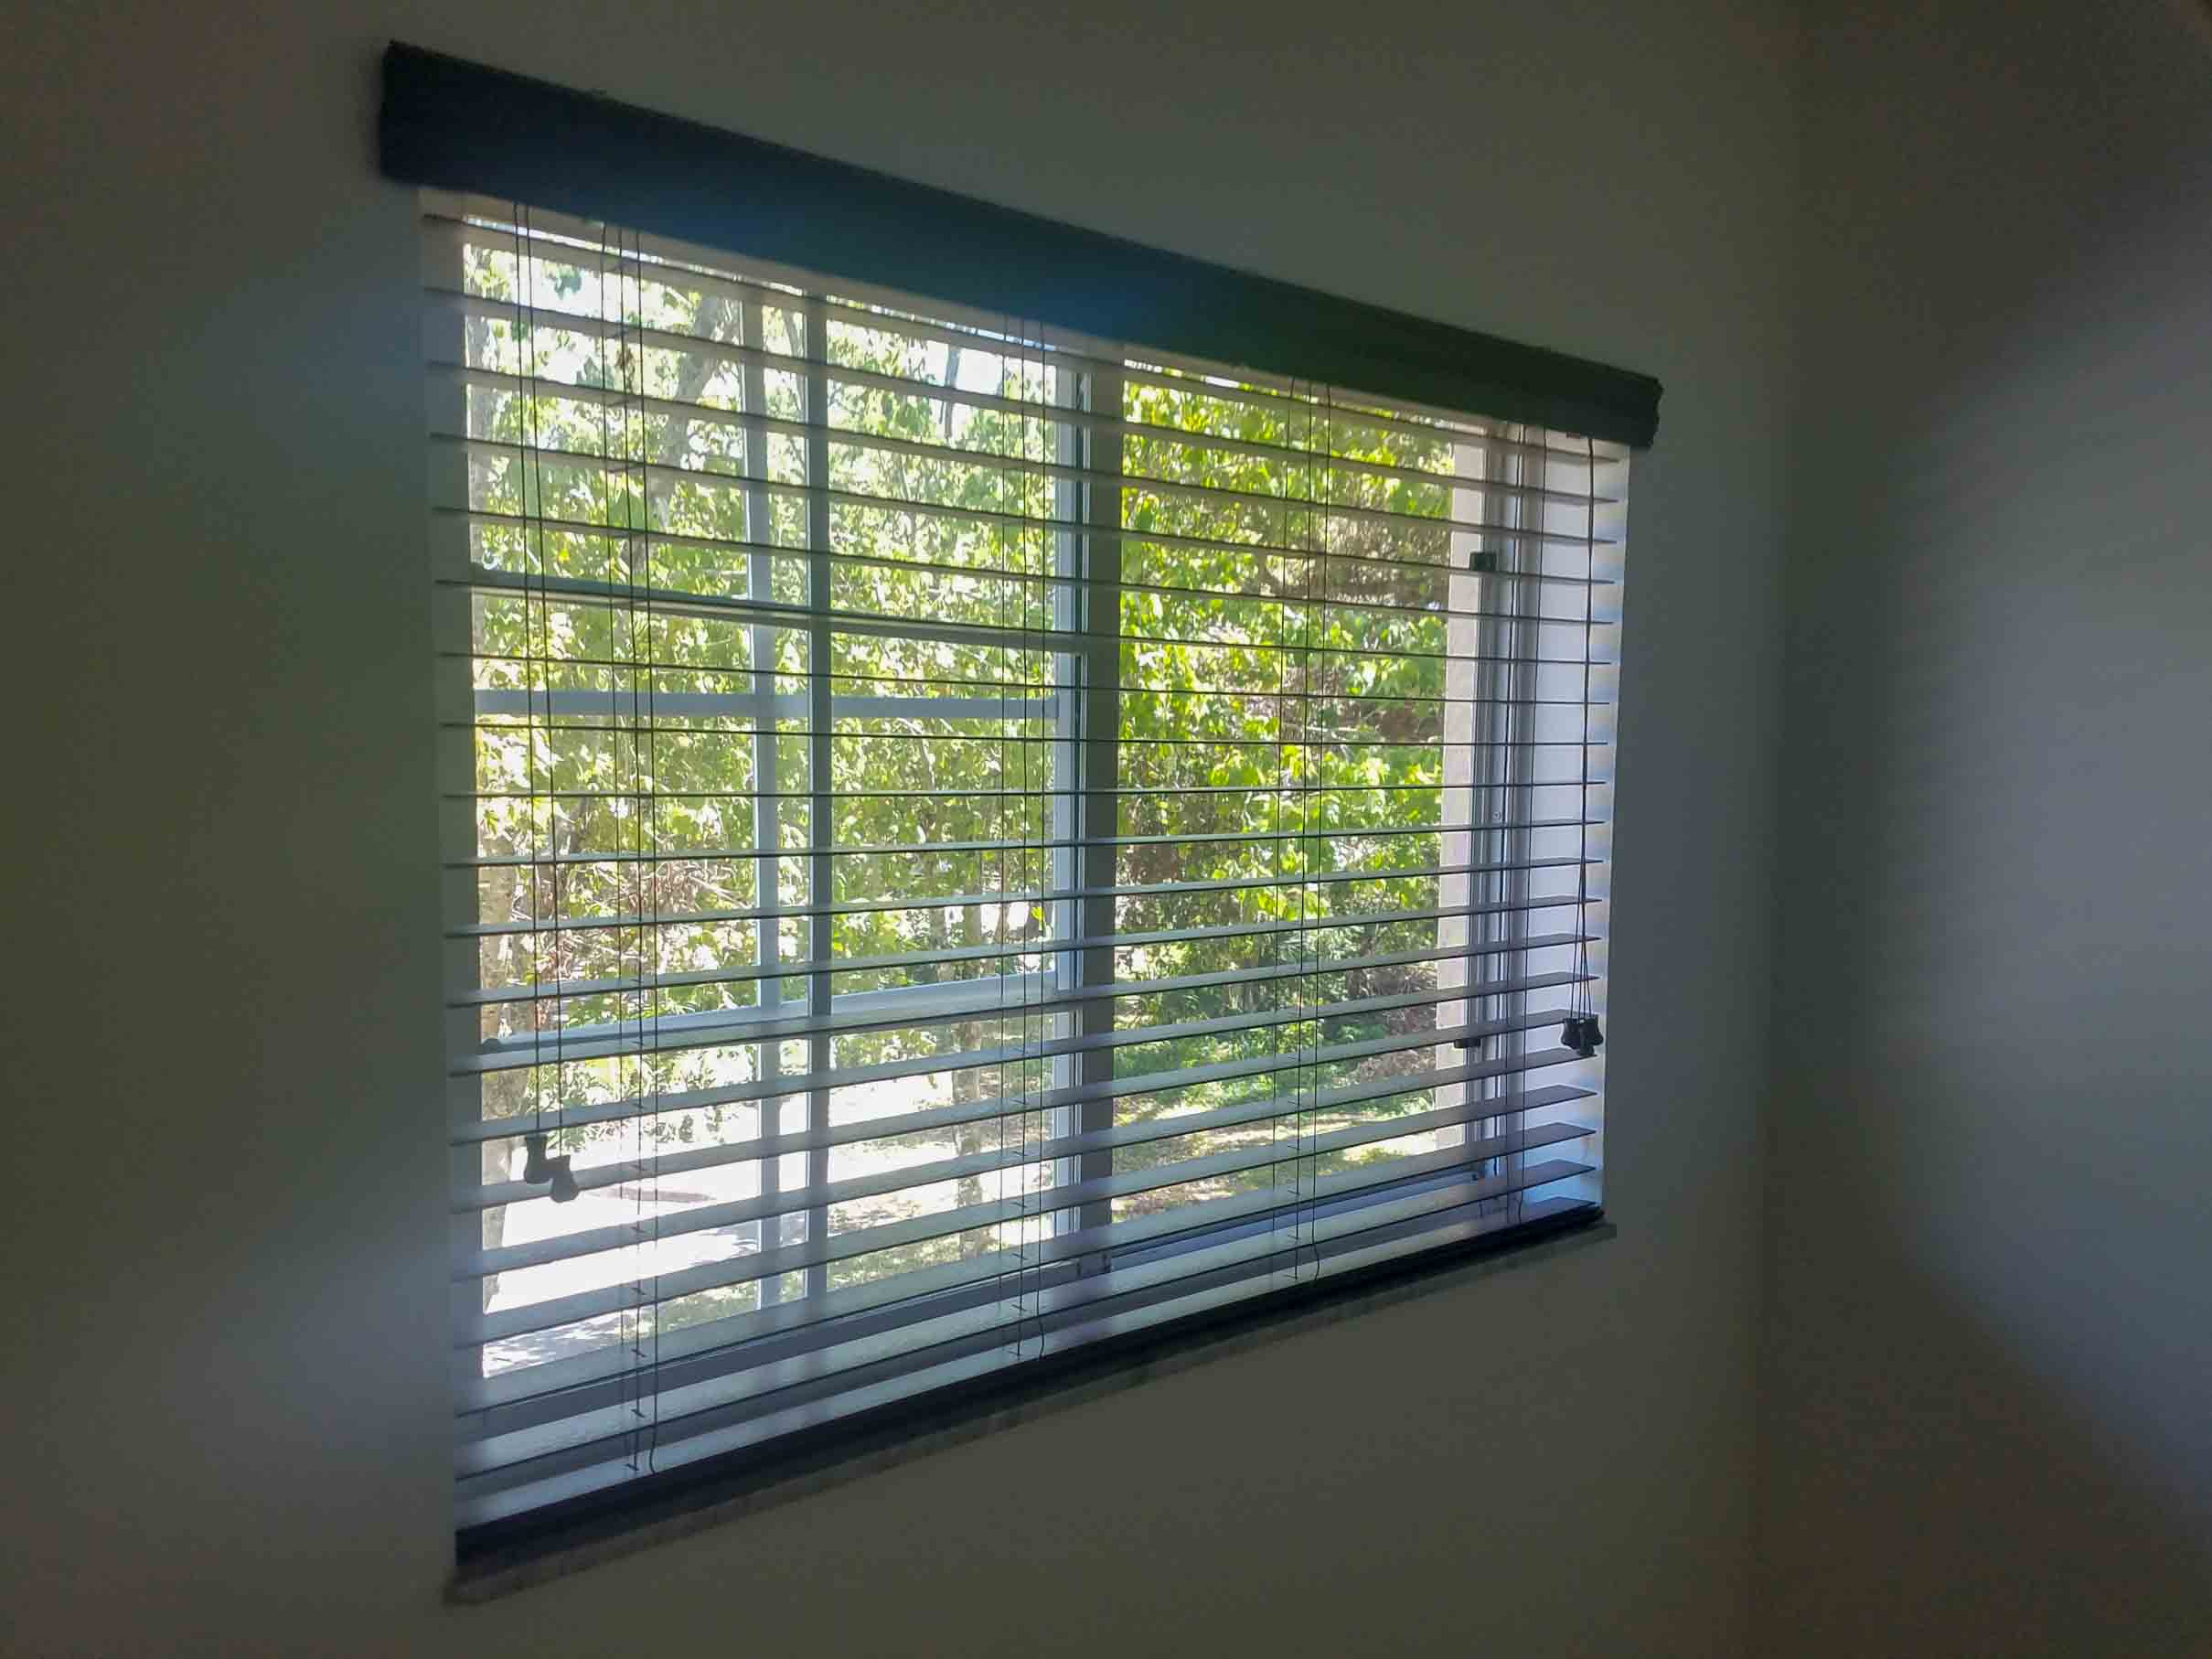 wood blinds gallery WOOD BLINDS GALLERY 20180322 144341